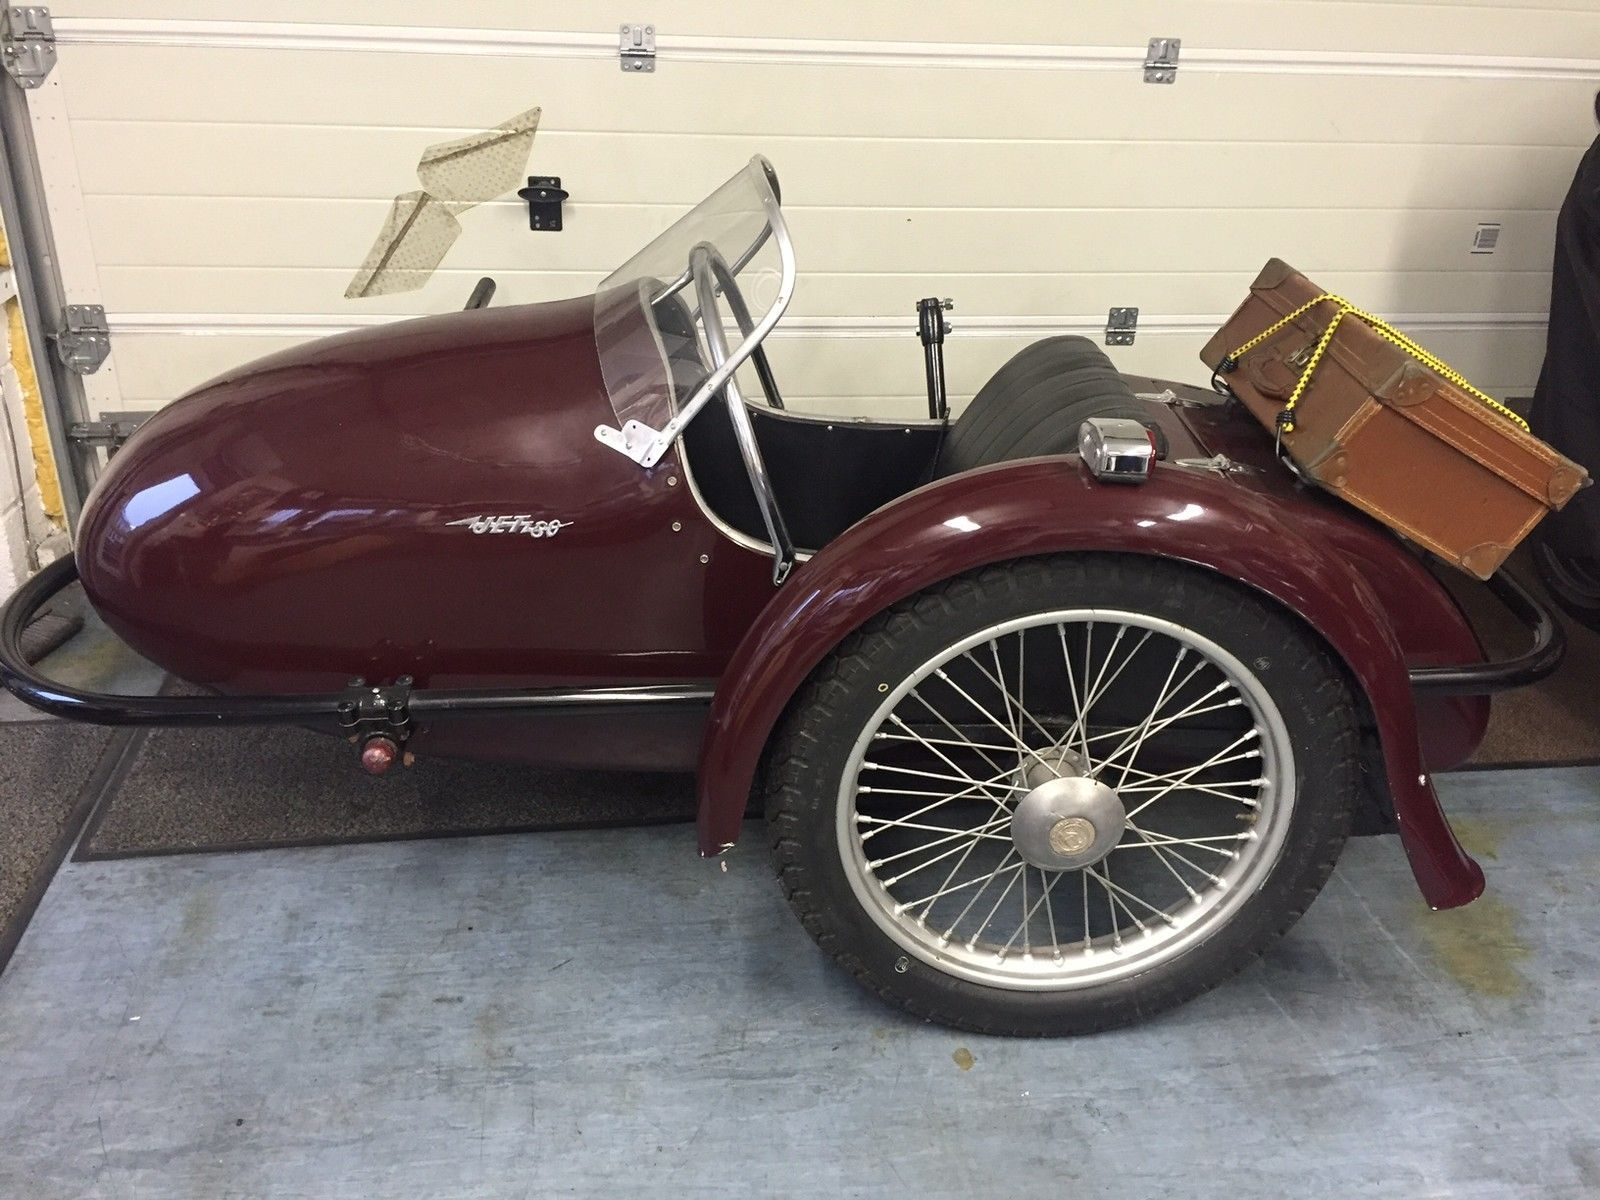 Swallow Sidecars Was Started In 1922 By William Lyons And William Walmsley In Blackpool In 1927 The Extended Production To Inclu Sidecar Classic Bikes Classic